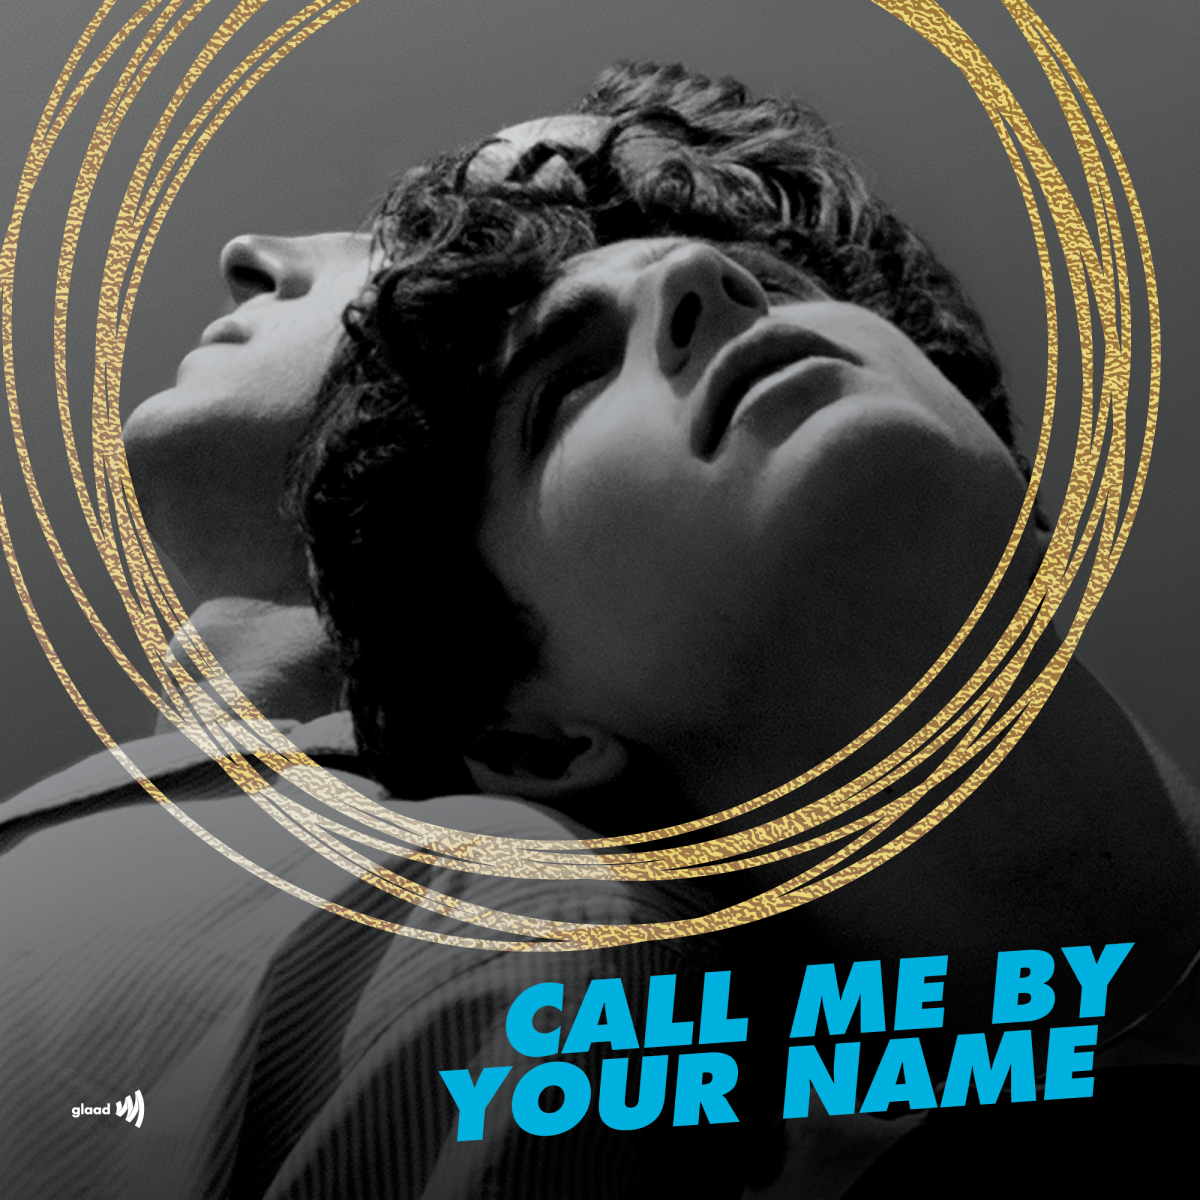 Call Me By Your Name - awards season